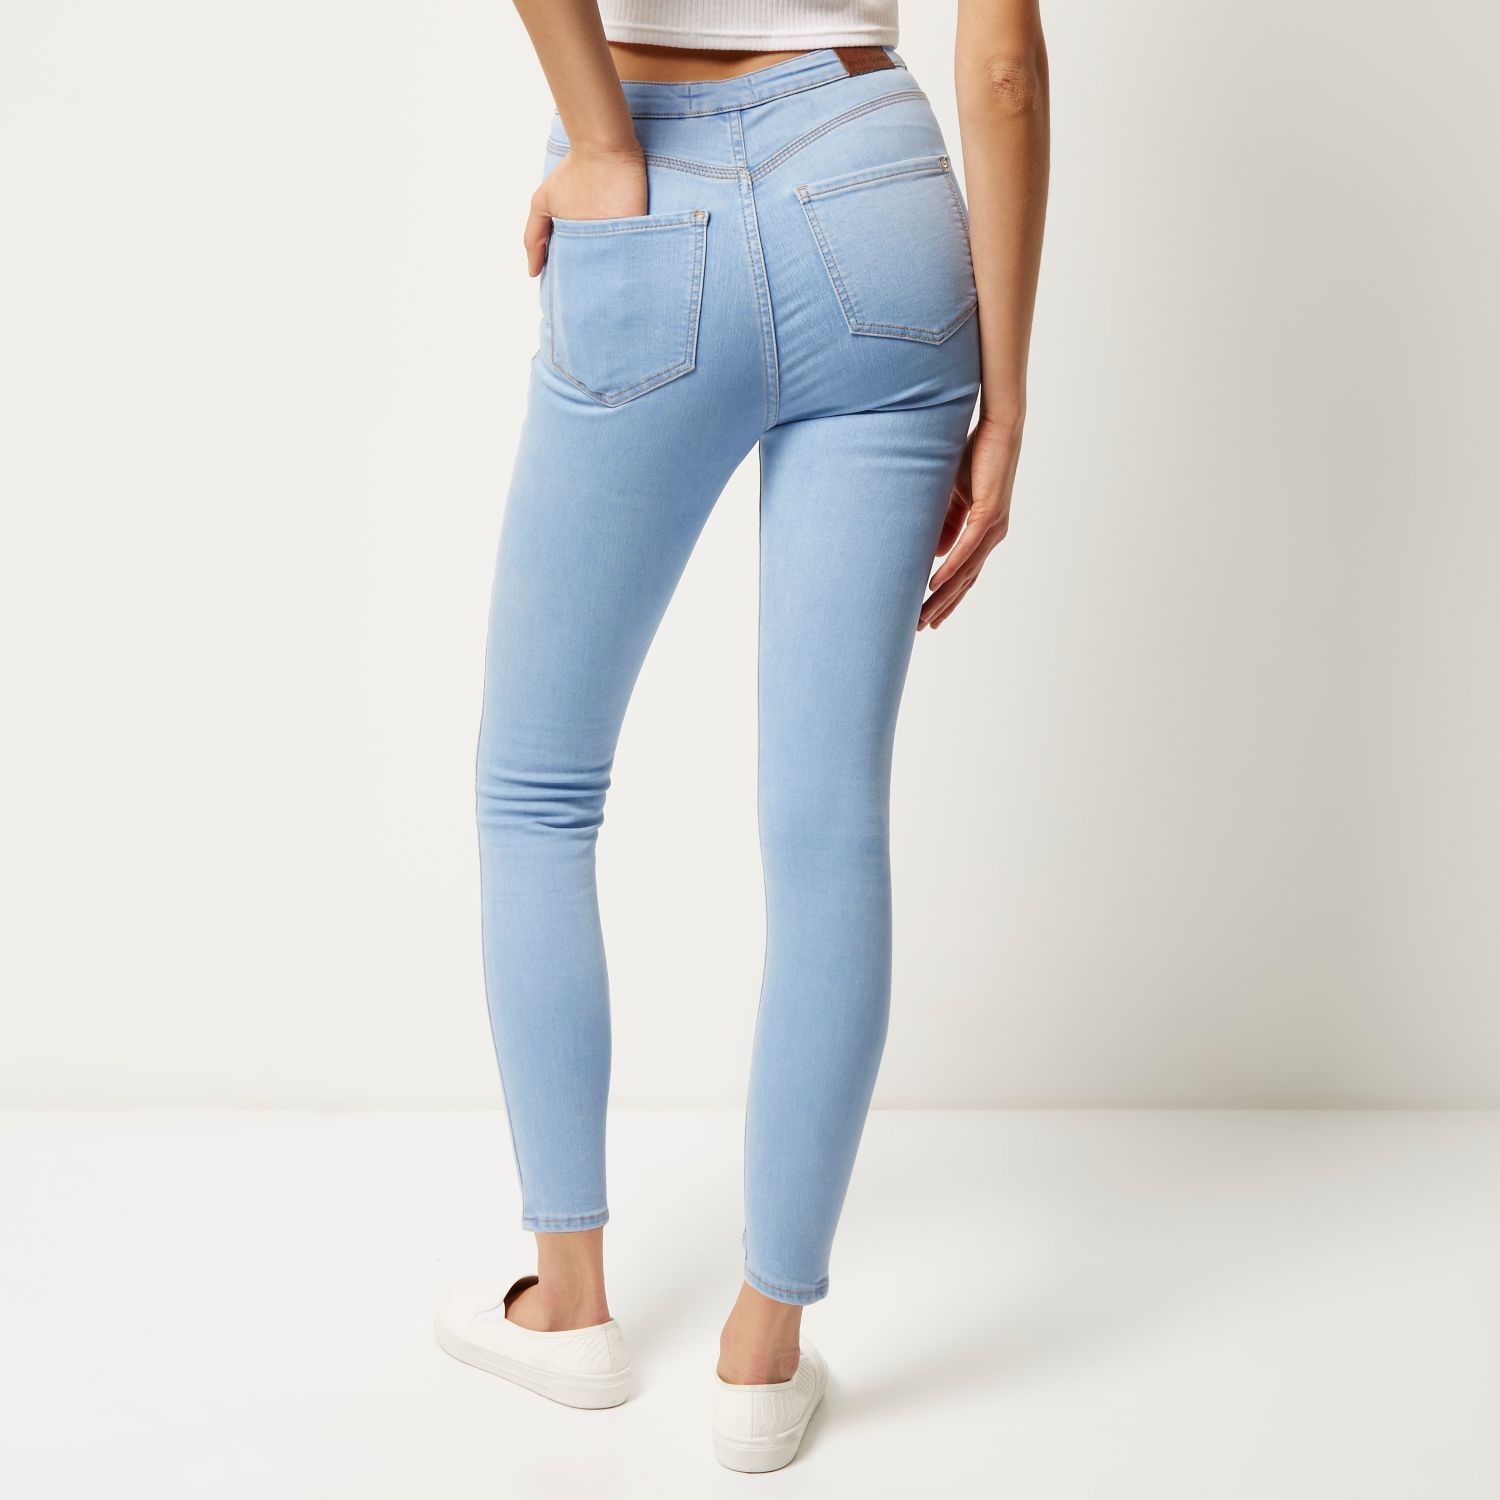 56bb6cb3ff0a4 River Island Light Wash High Waisted Molly Jeggings in Blue - Lyst